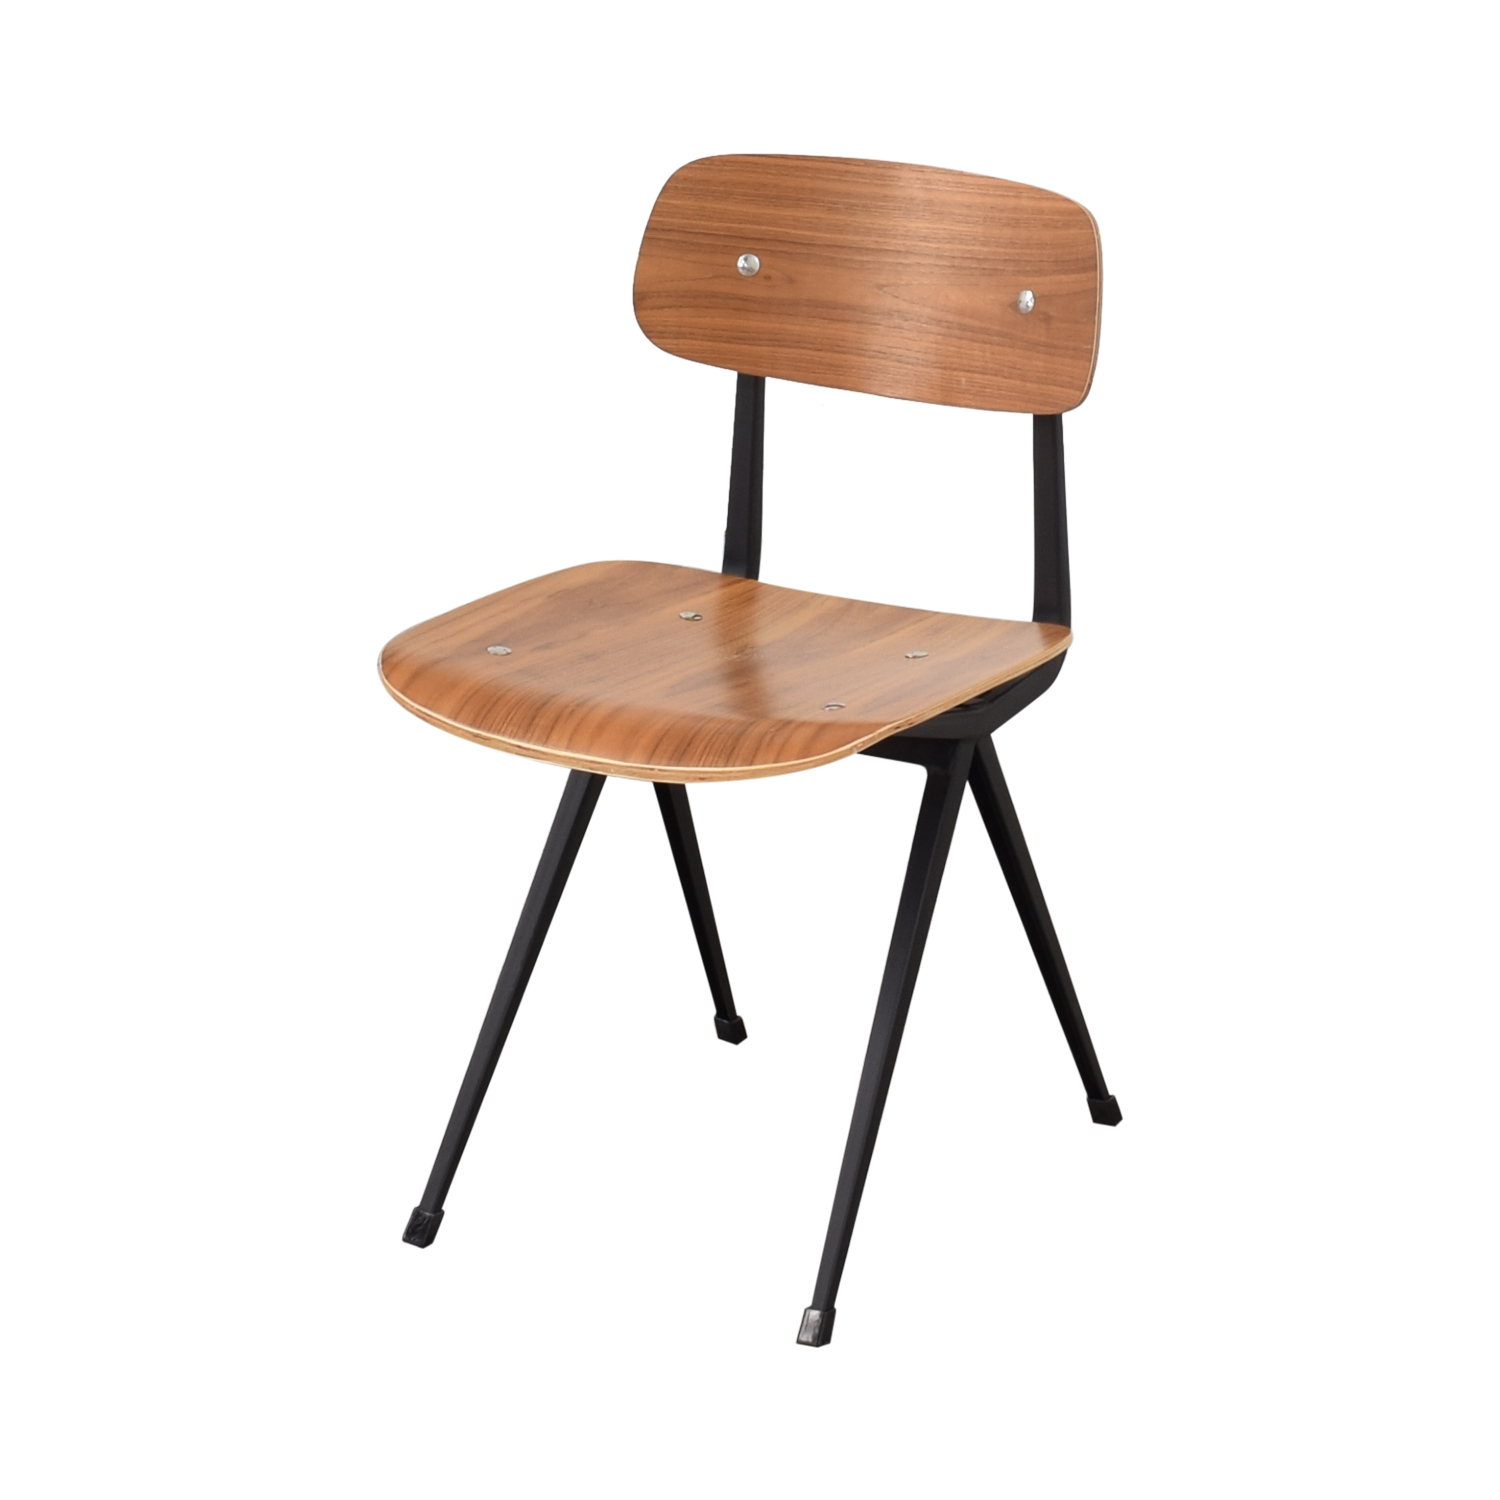 Organic Modernism Organic Modernism Cafe Walnut Dining Chair